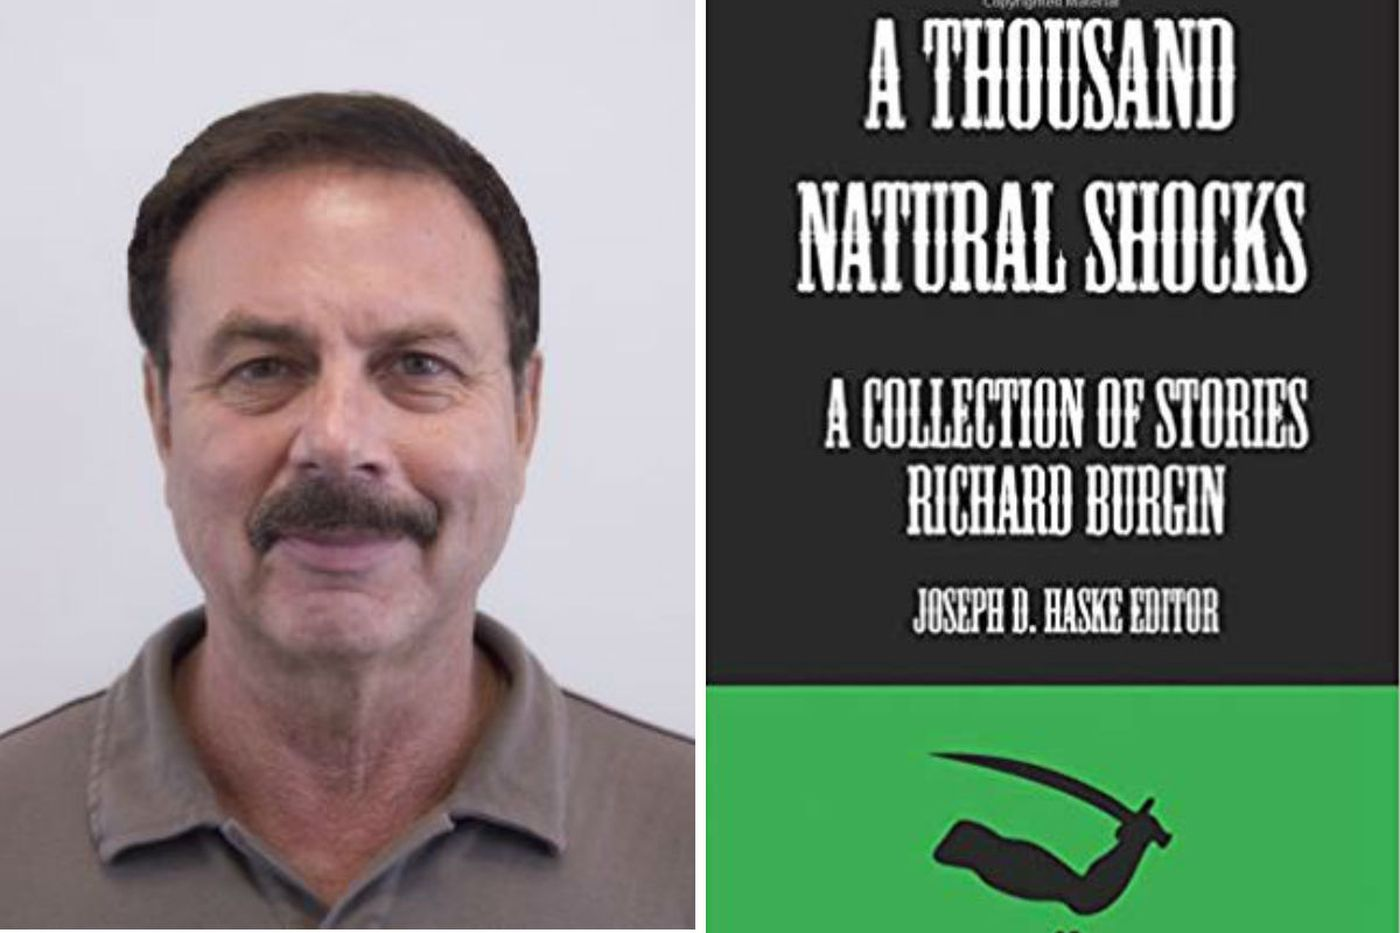 Richard Burgin's 'A Thousand Natural Shocks': Imaginative, profound, with dark humor added